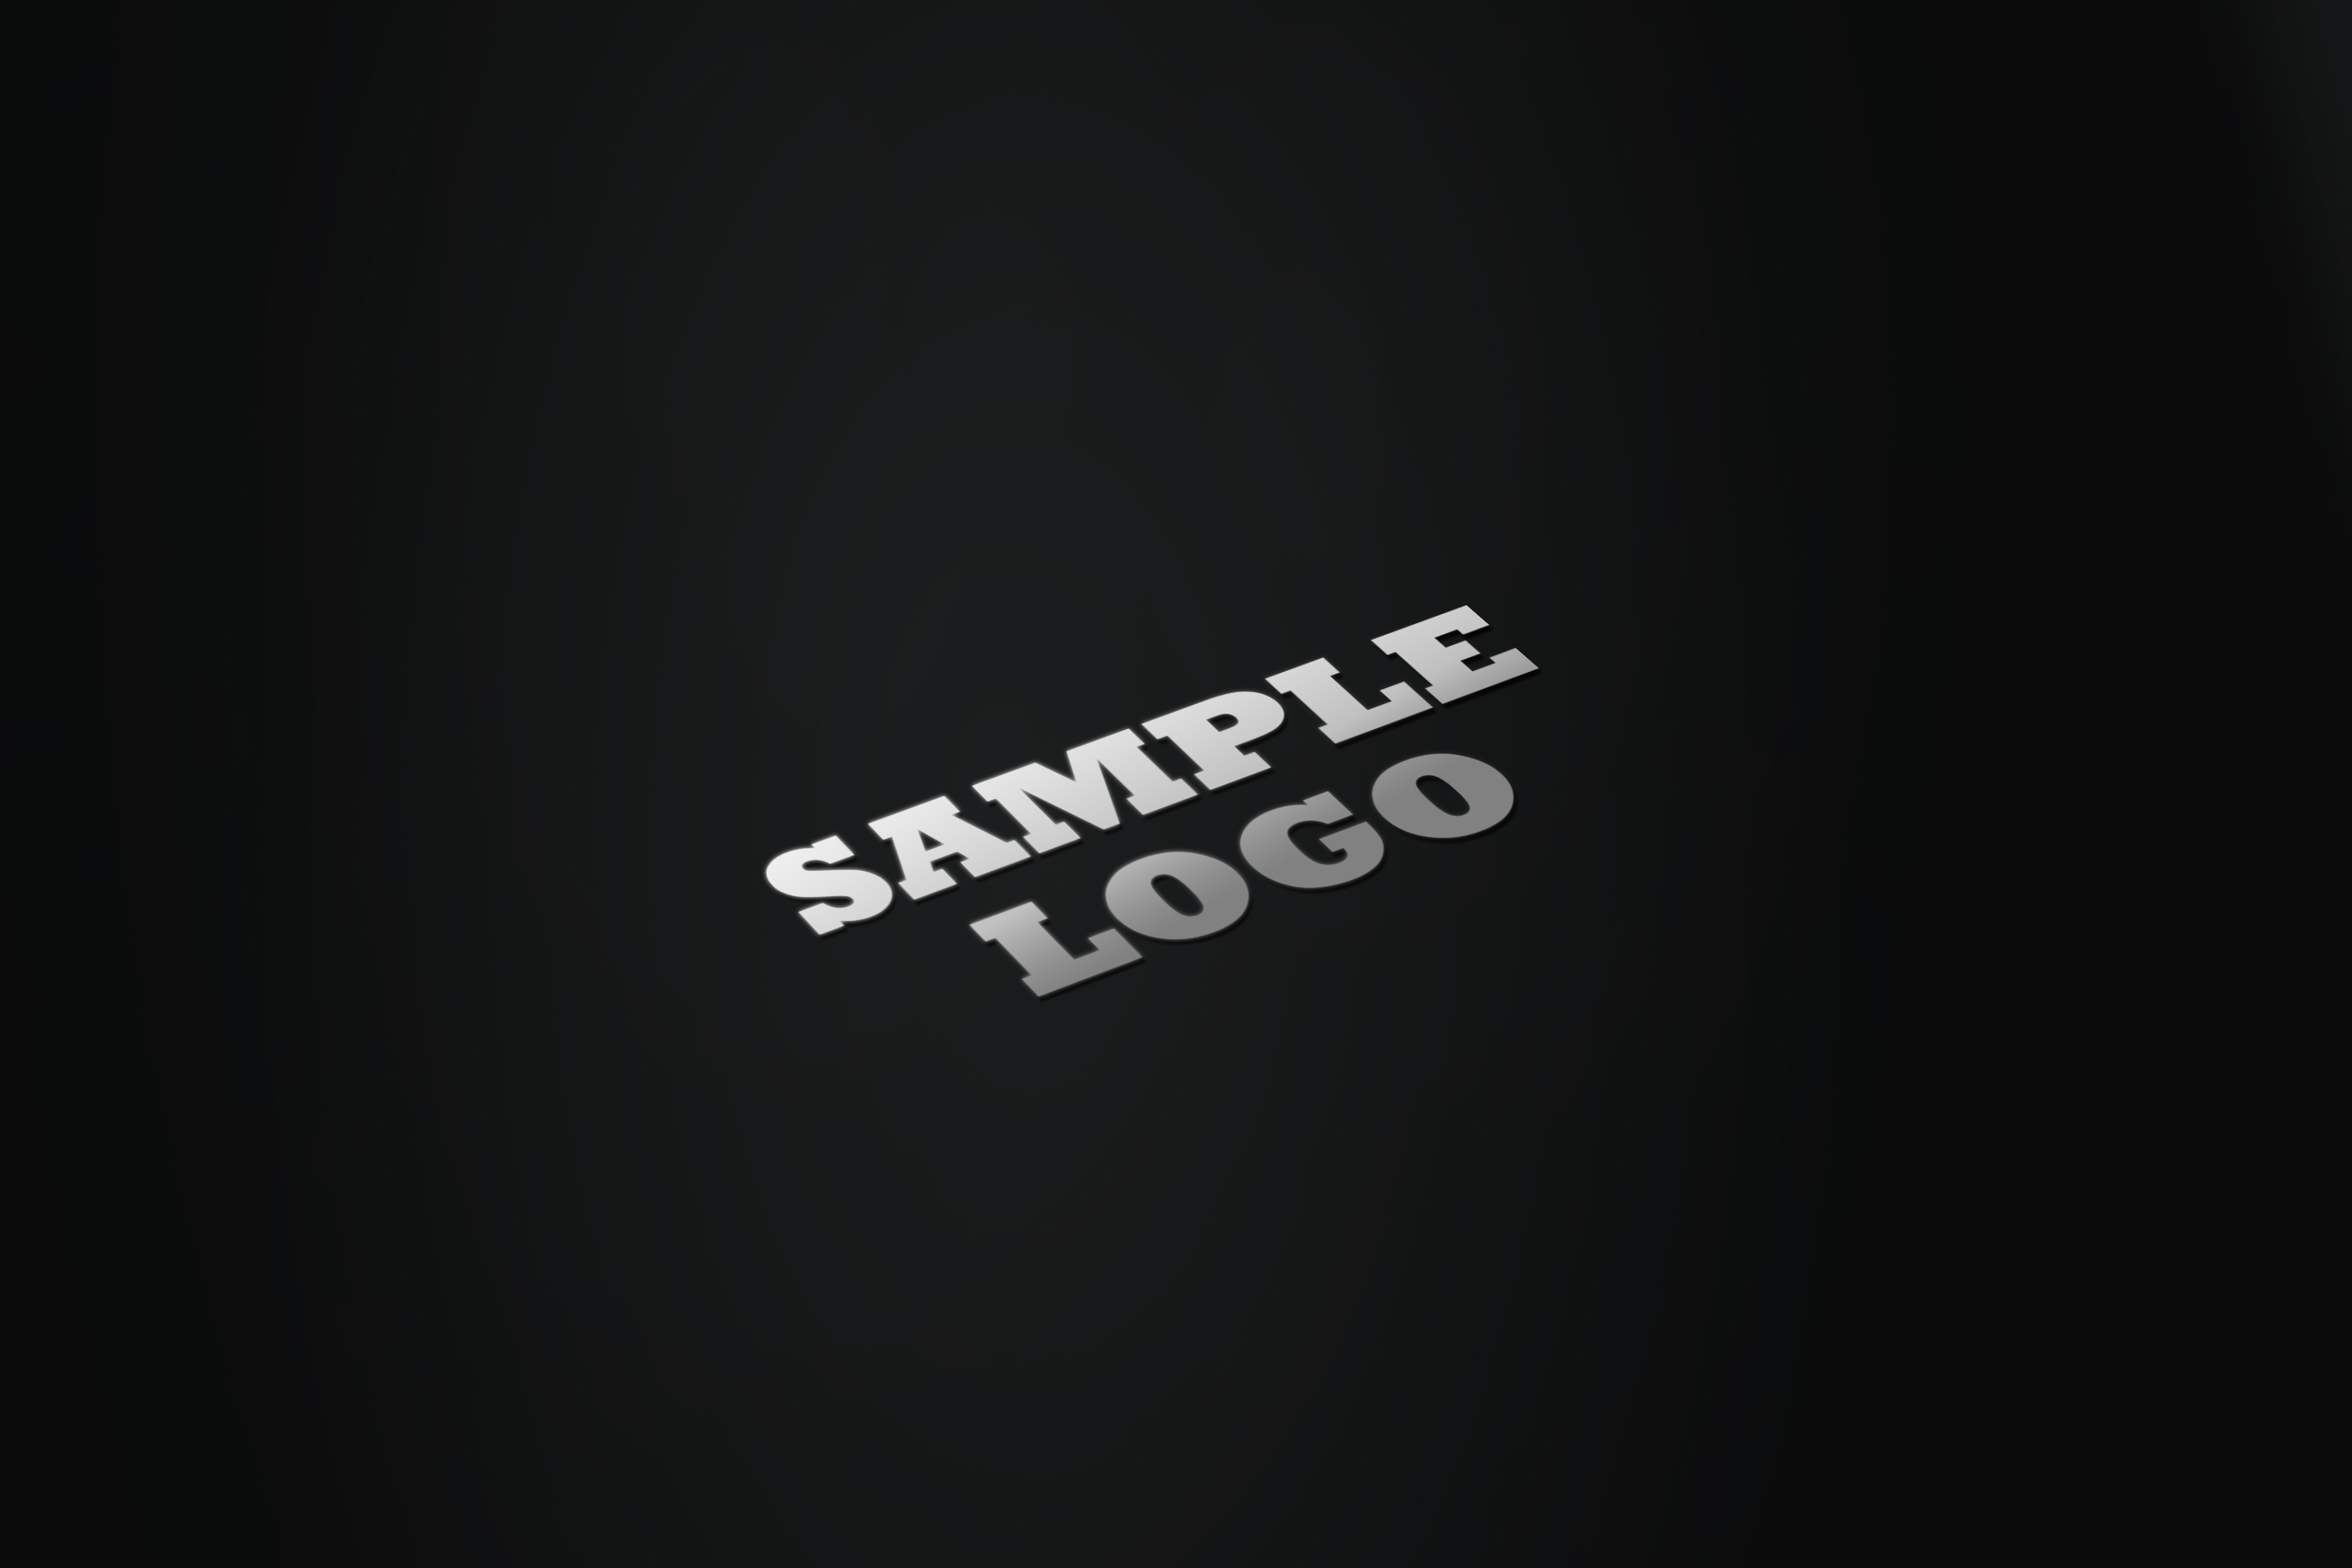 i will create stunning logo design for your company